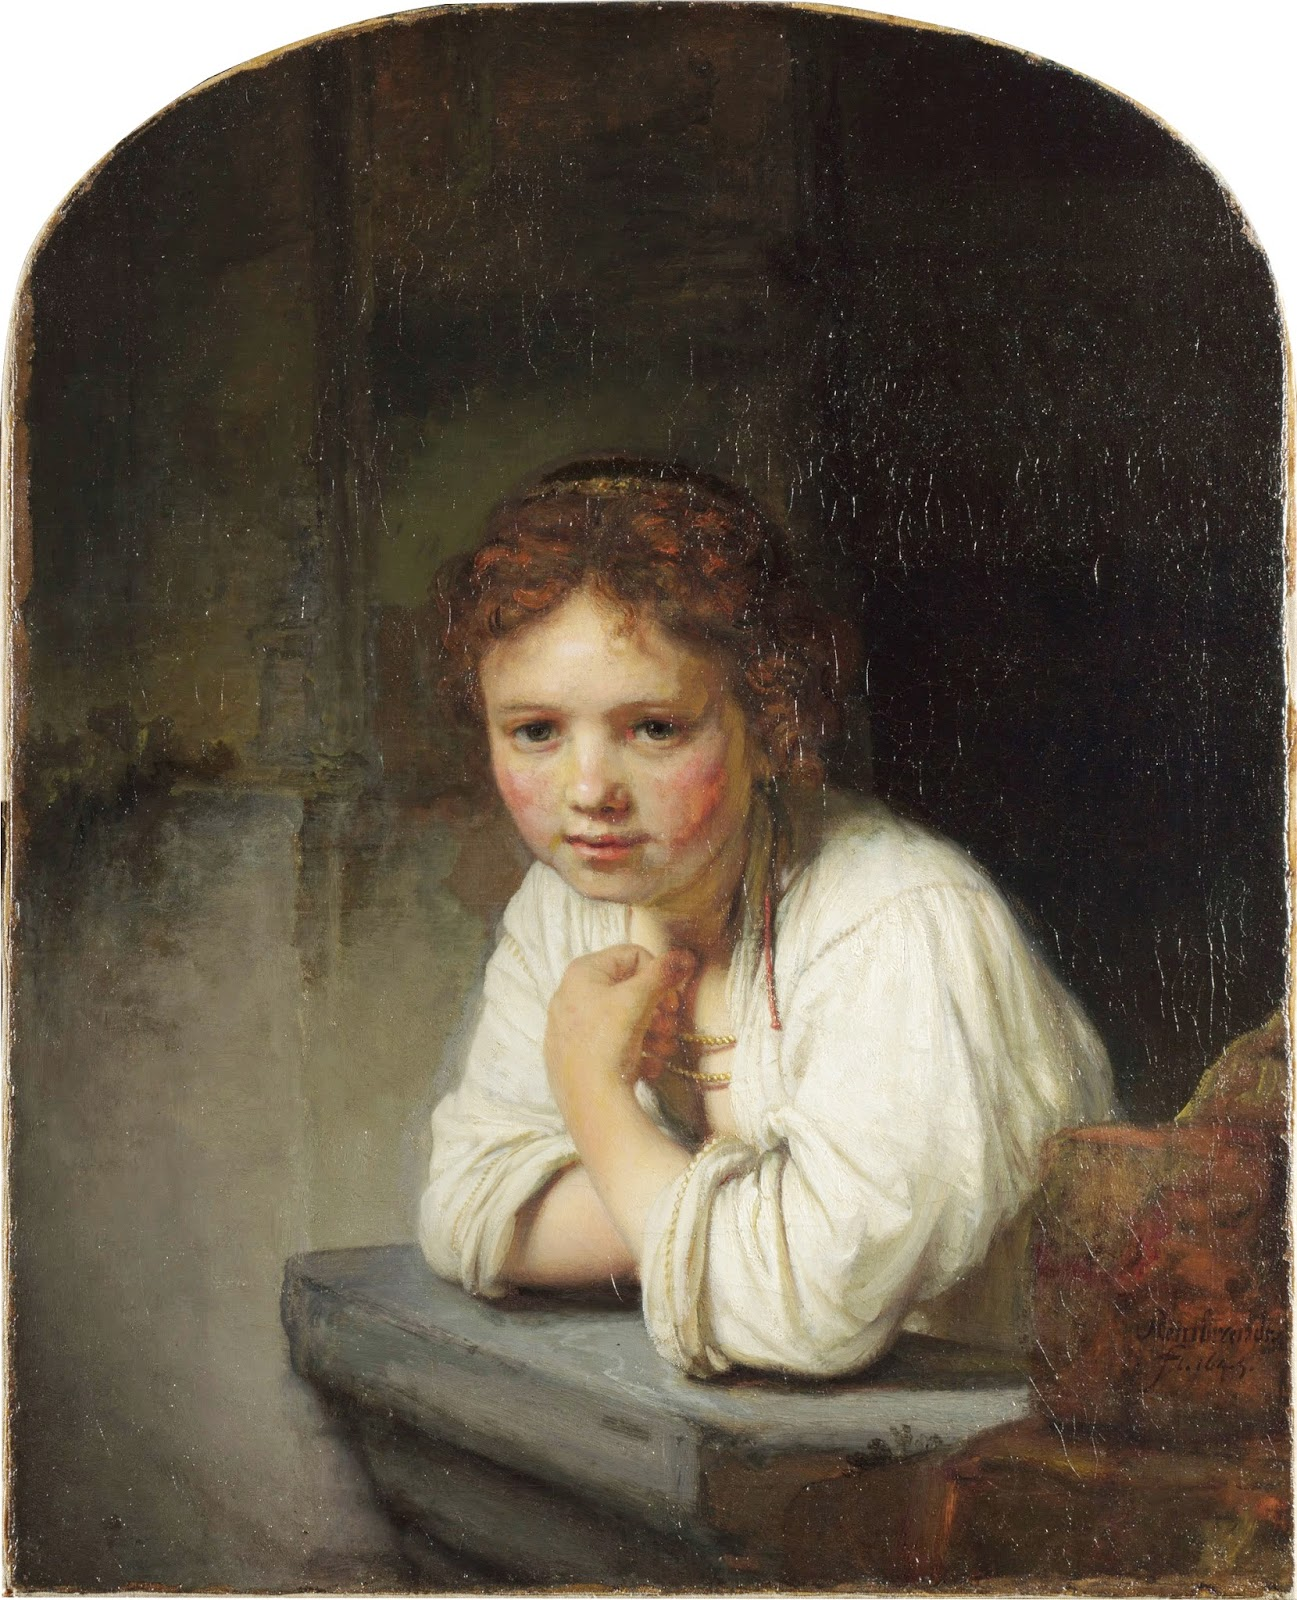 rembrandt to reynolds rembrandt girl leaning on a windowsill 1649 oil on canvas 82 x 66 cm dulwich picture gallery london